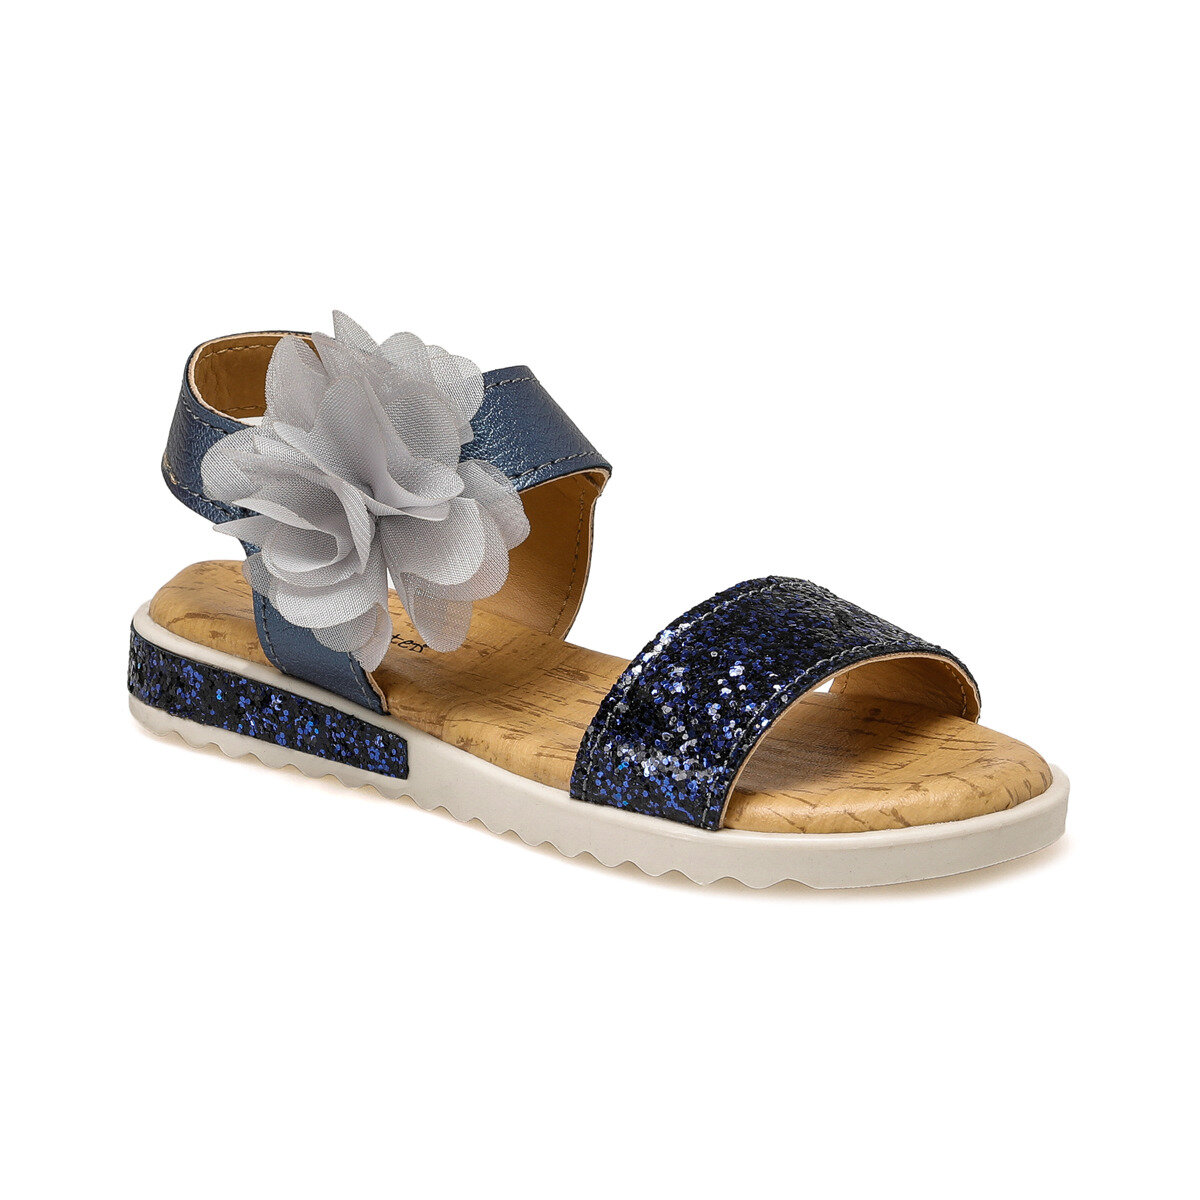 FLO SUVLA Navy Blue Female Child Sandals PINKSTEP